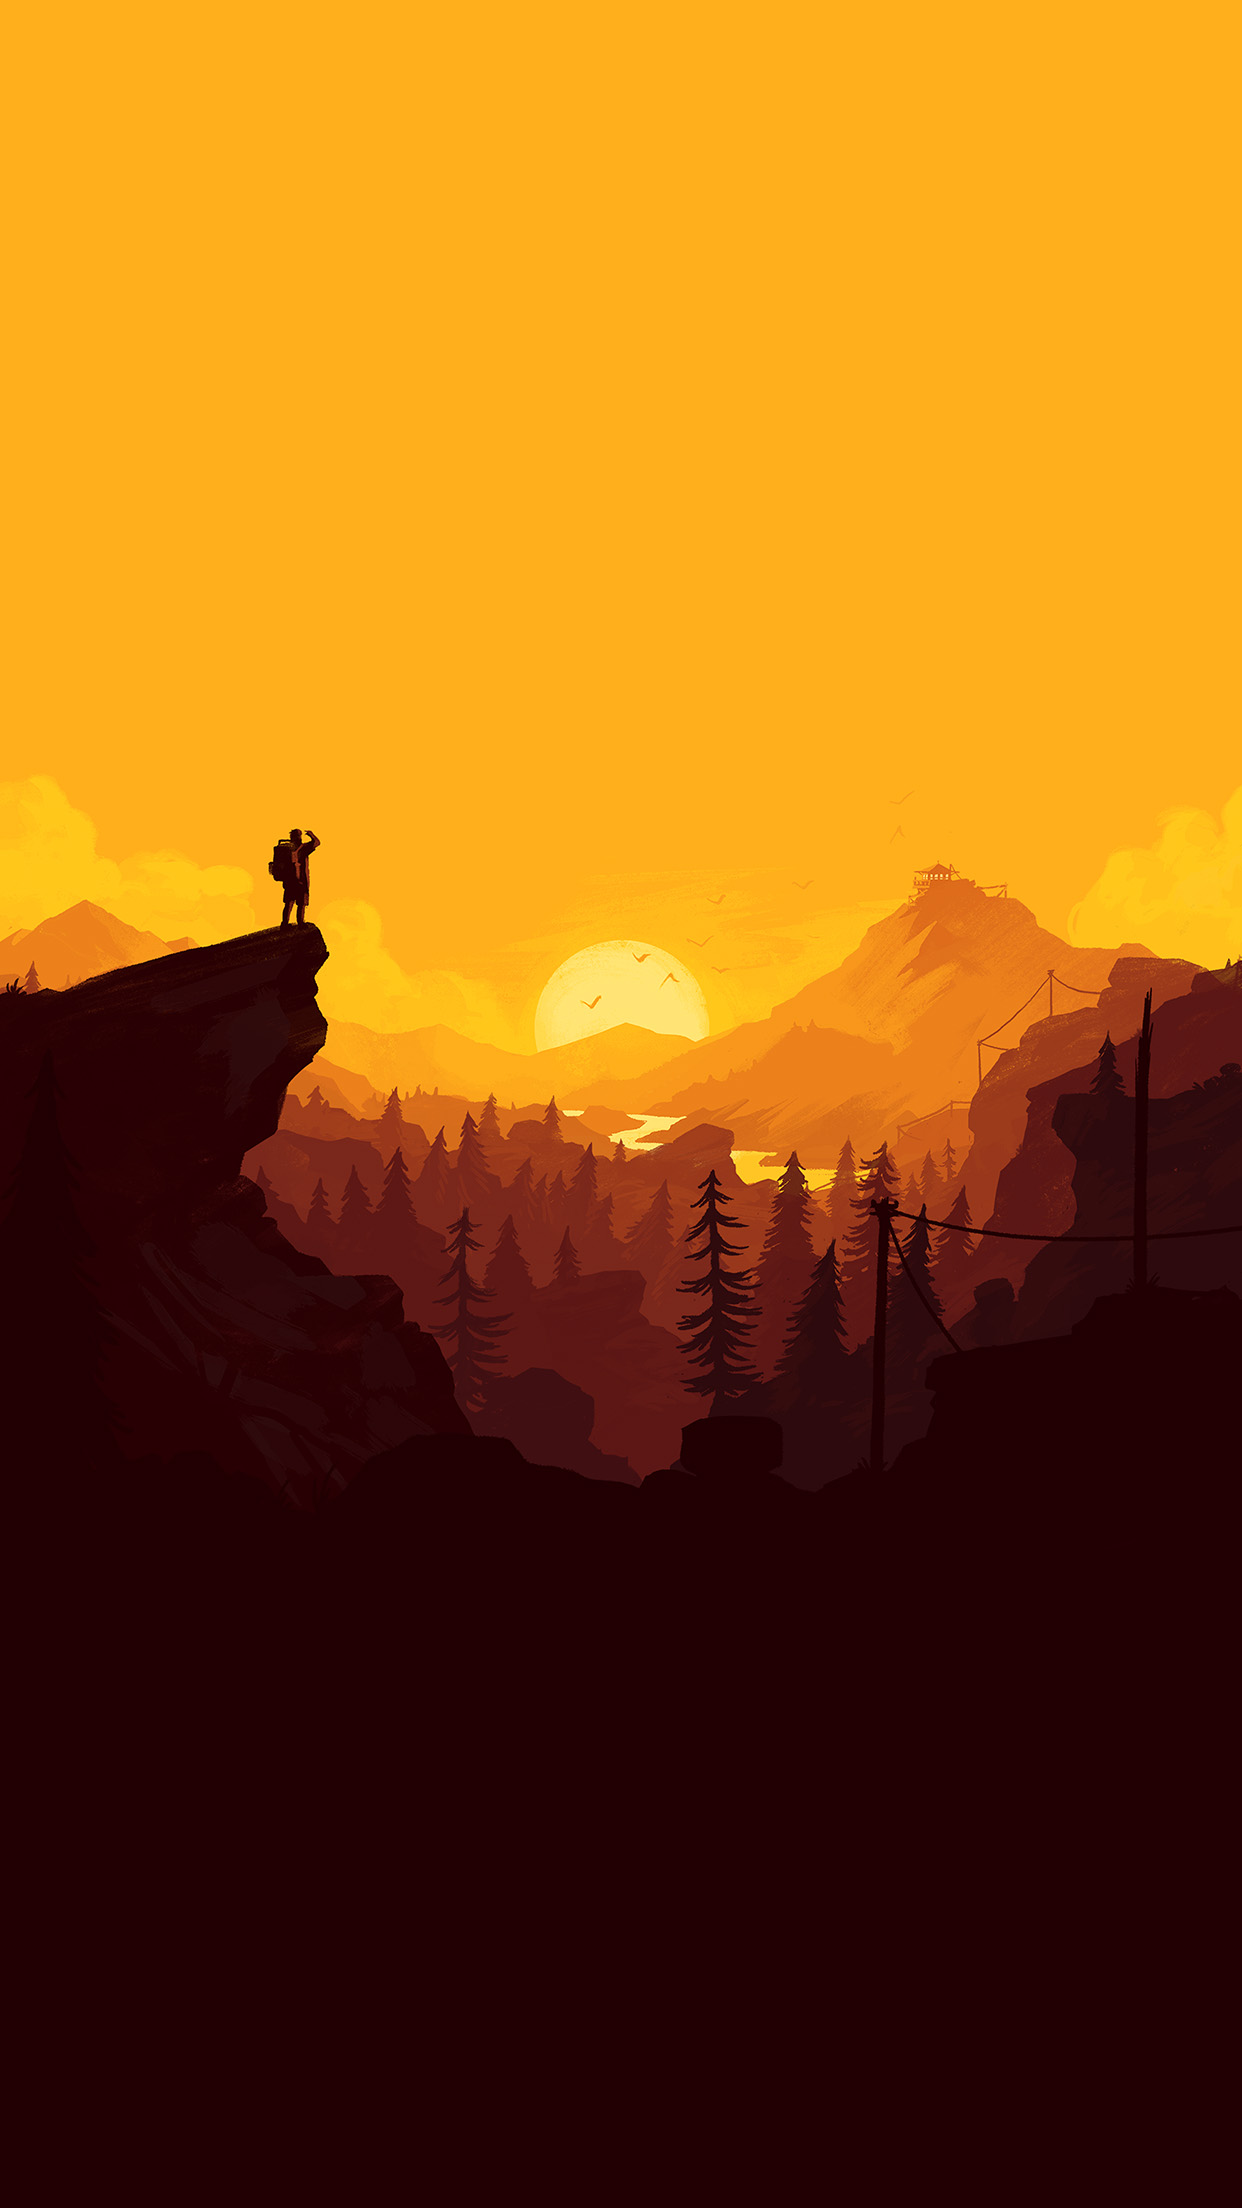 Au34 nature sunset simple minimal illustration art wallpaper